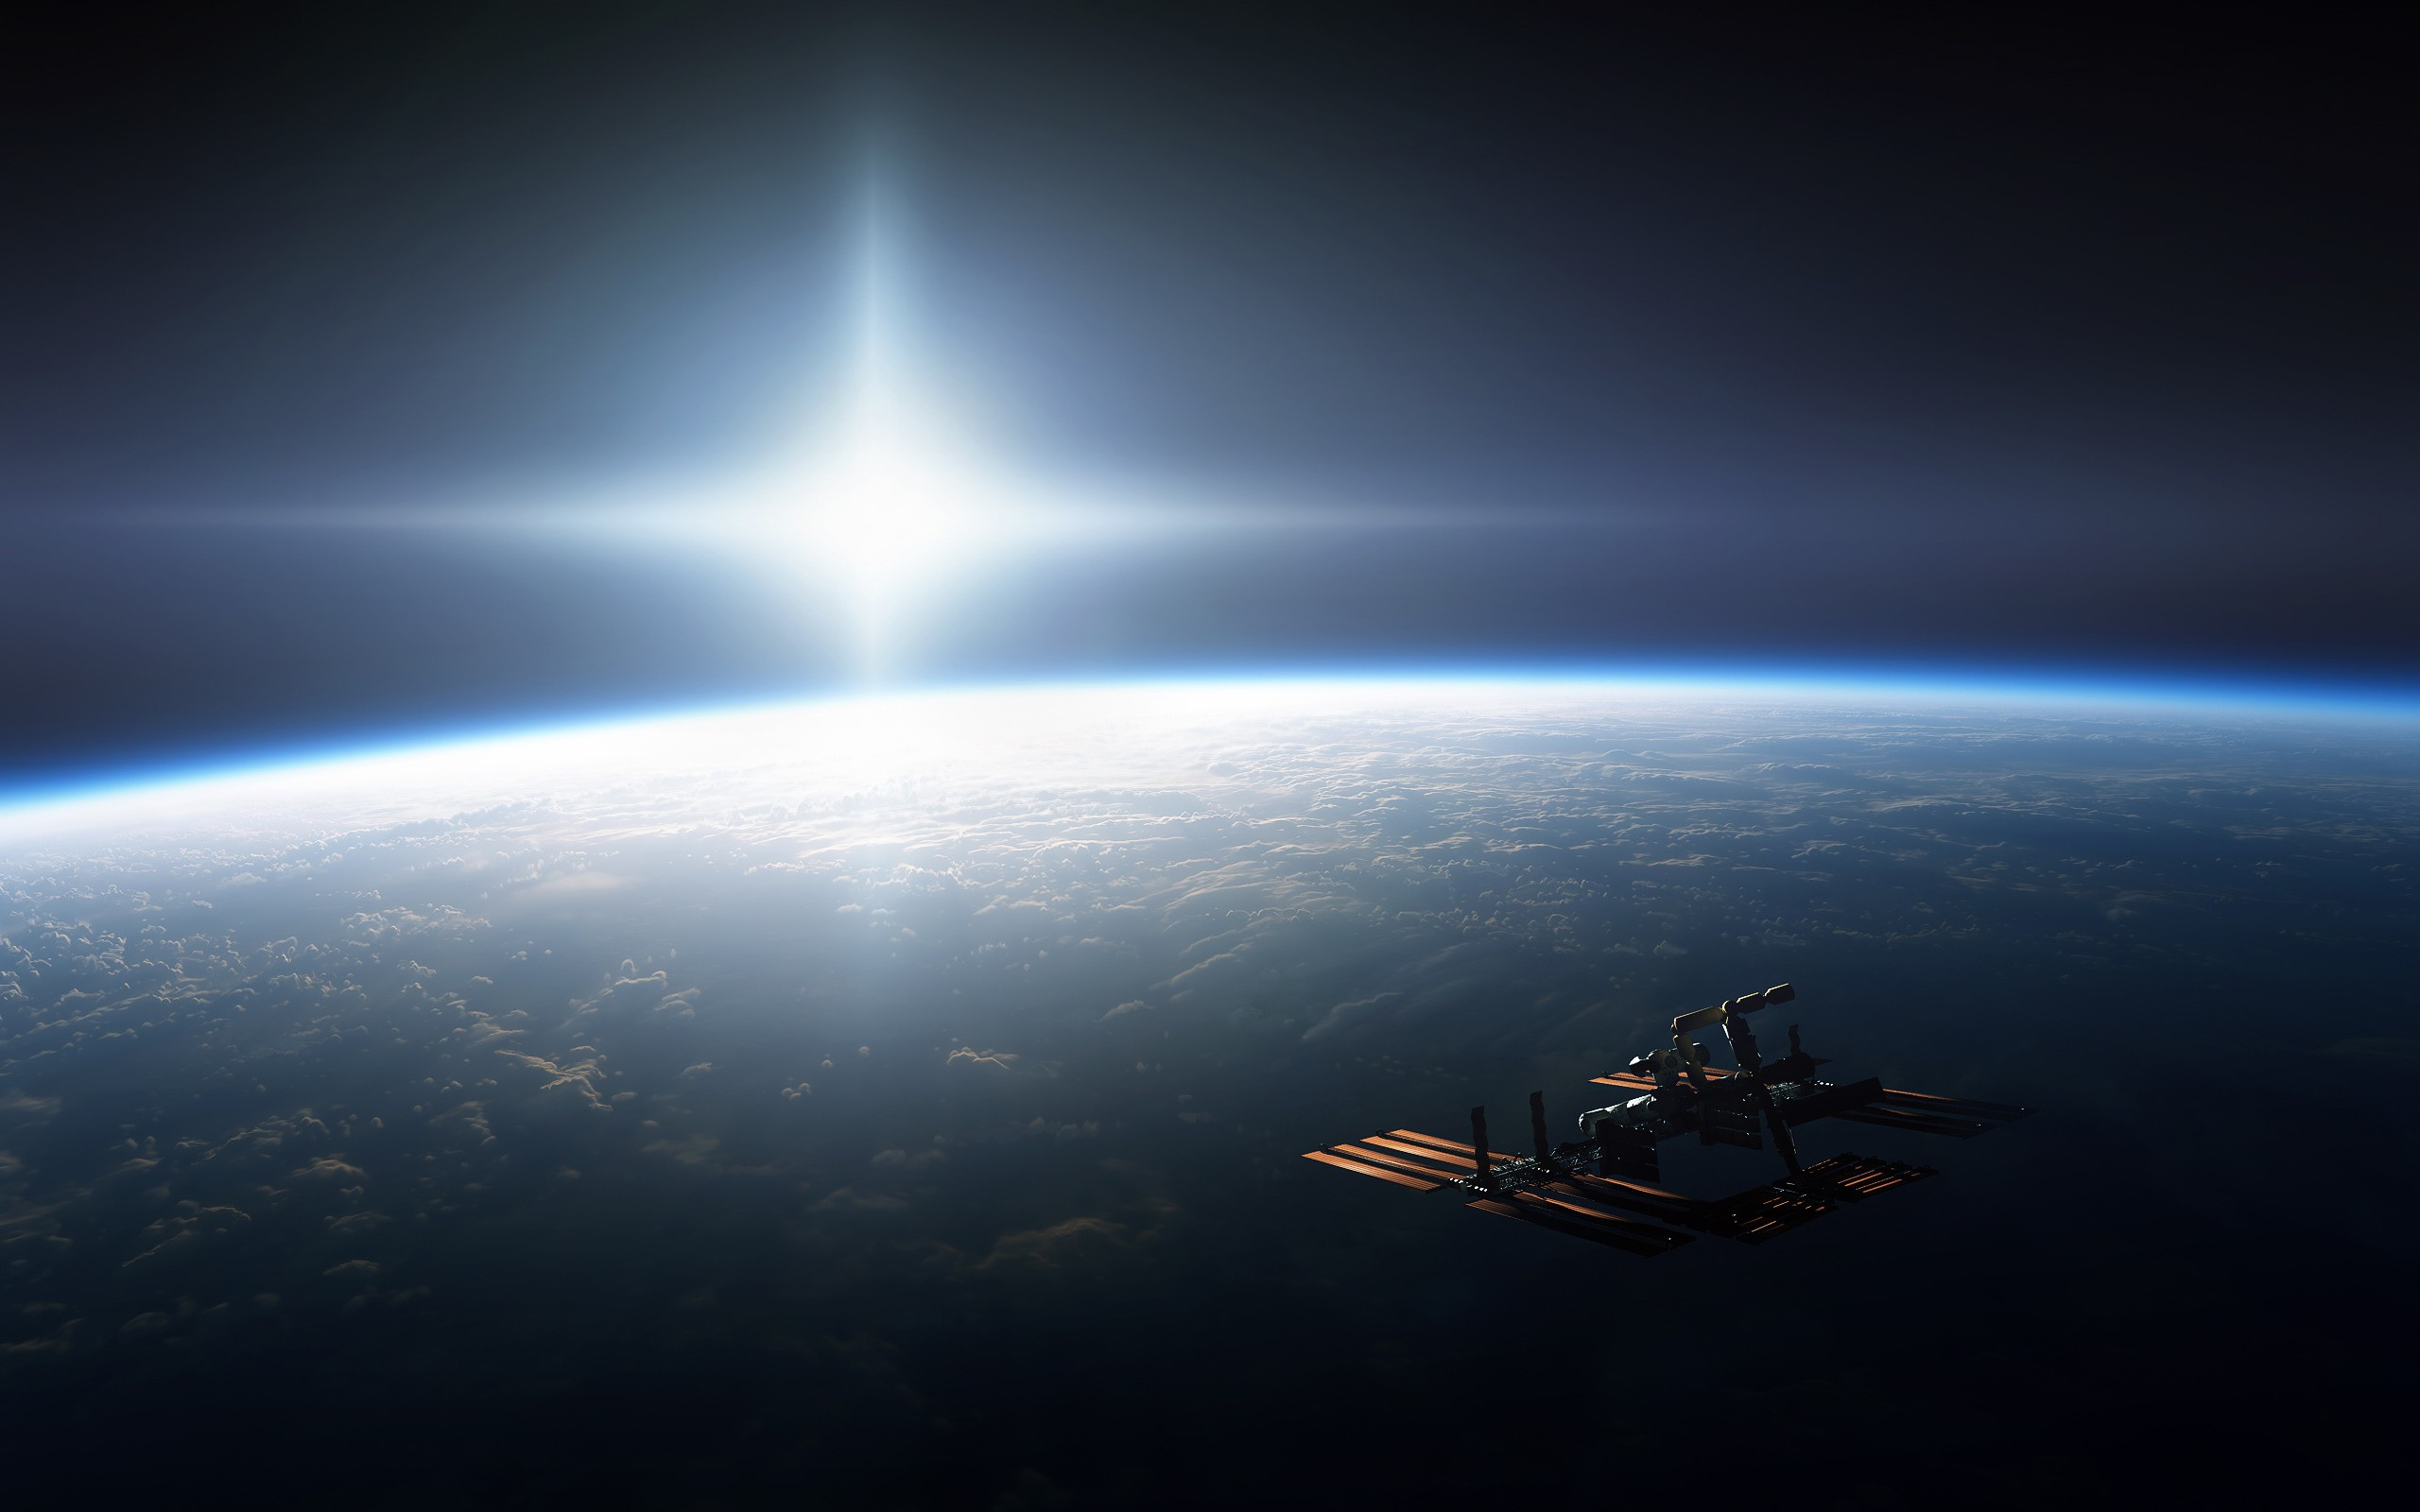 General 2560x1600 photography International Space Station ISS space Earth Sun horizon space station CGI digital art space art